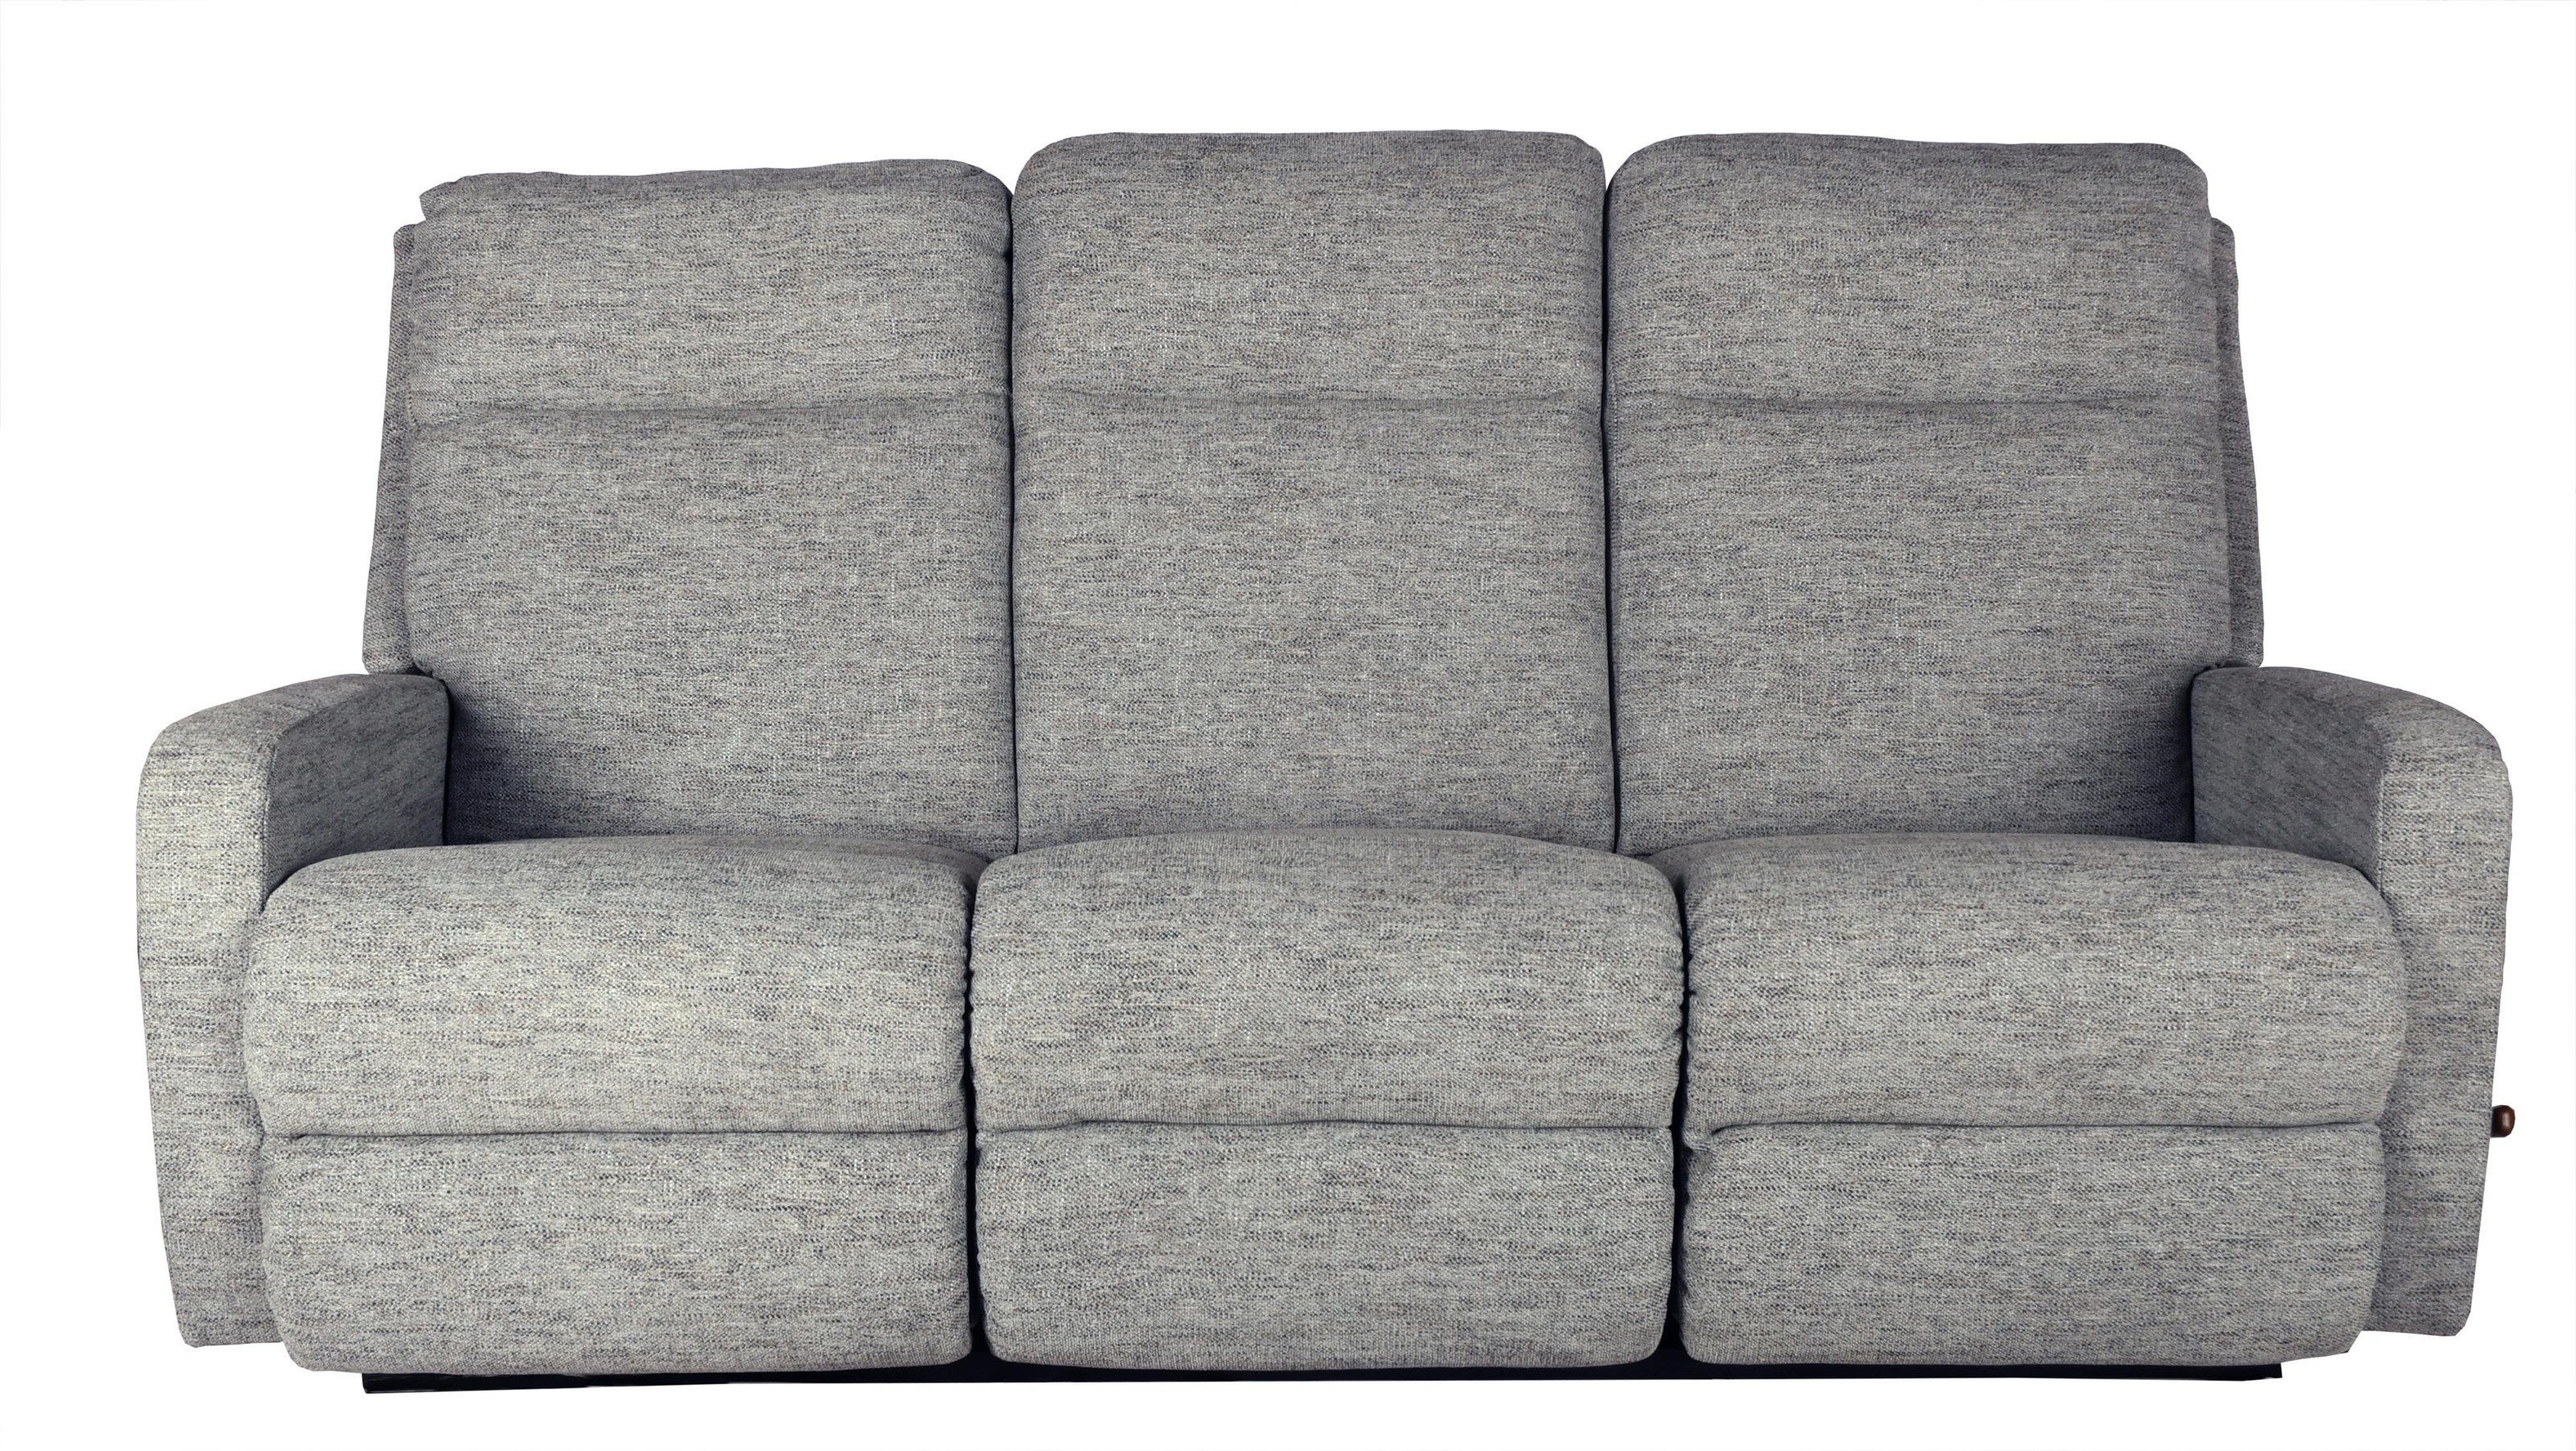 Finley Wall Reclining Sofa by La-Z-Boy at Bennett's Furniture and Mattresses